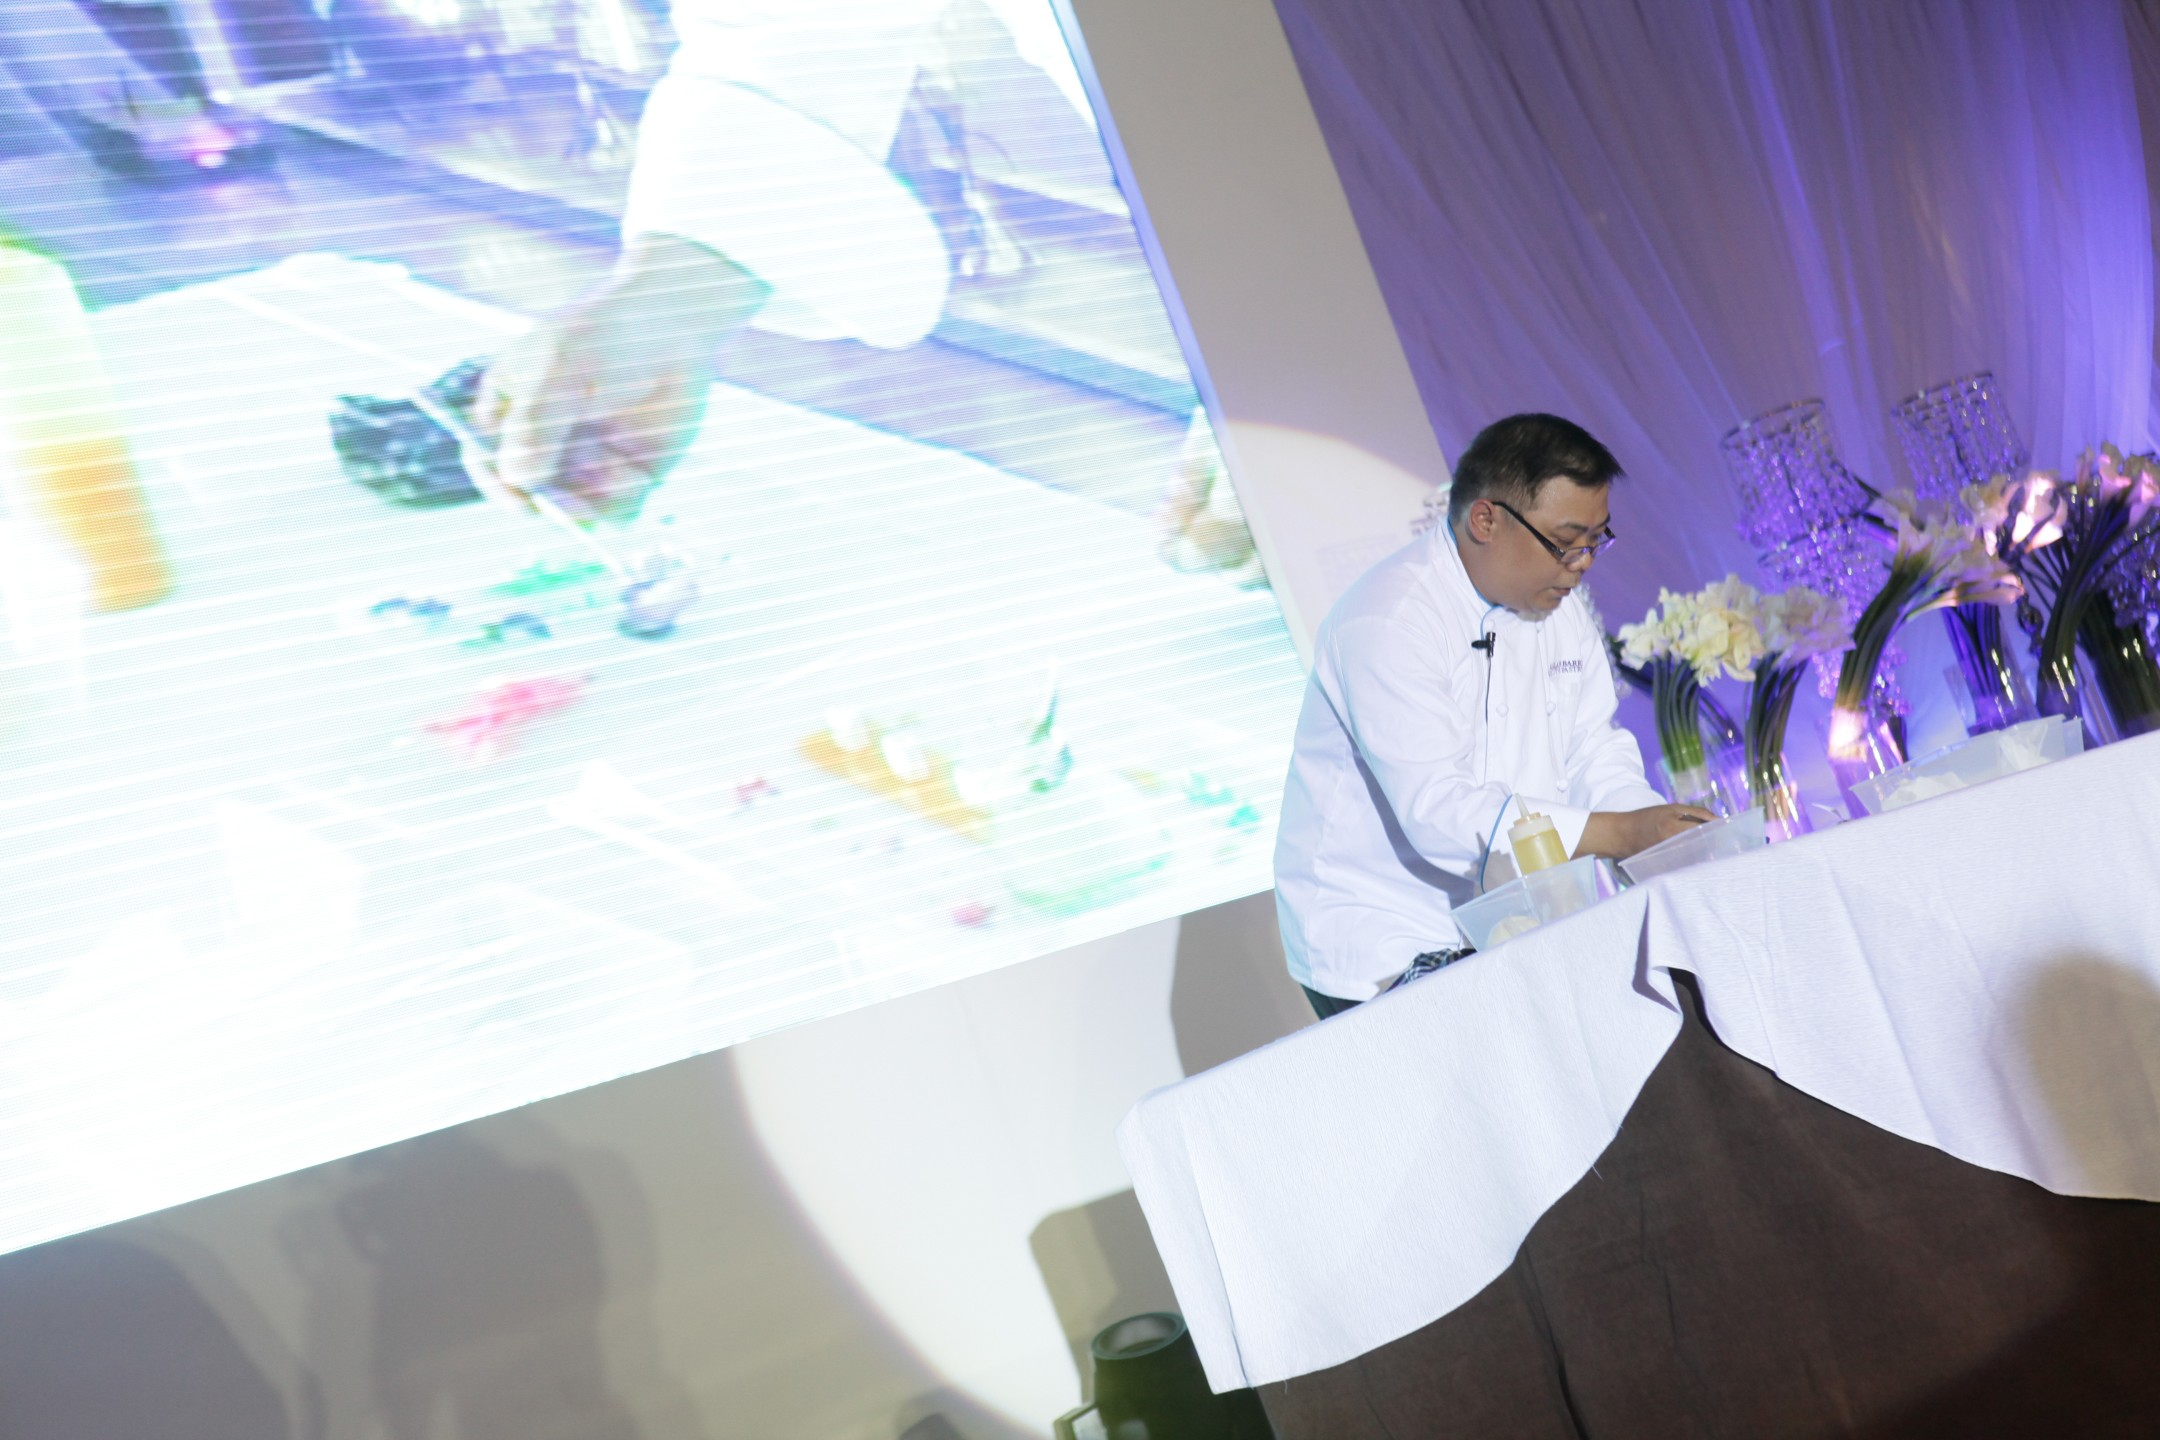 Radisson Blu Cebu's Executive Pastry Chef Allan Barrios presented a white chocolate panna cotta with mango sauce and a secret French macron recipe